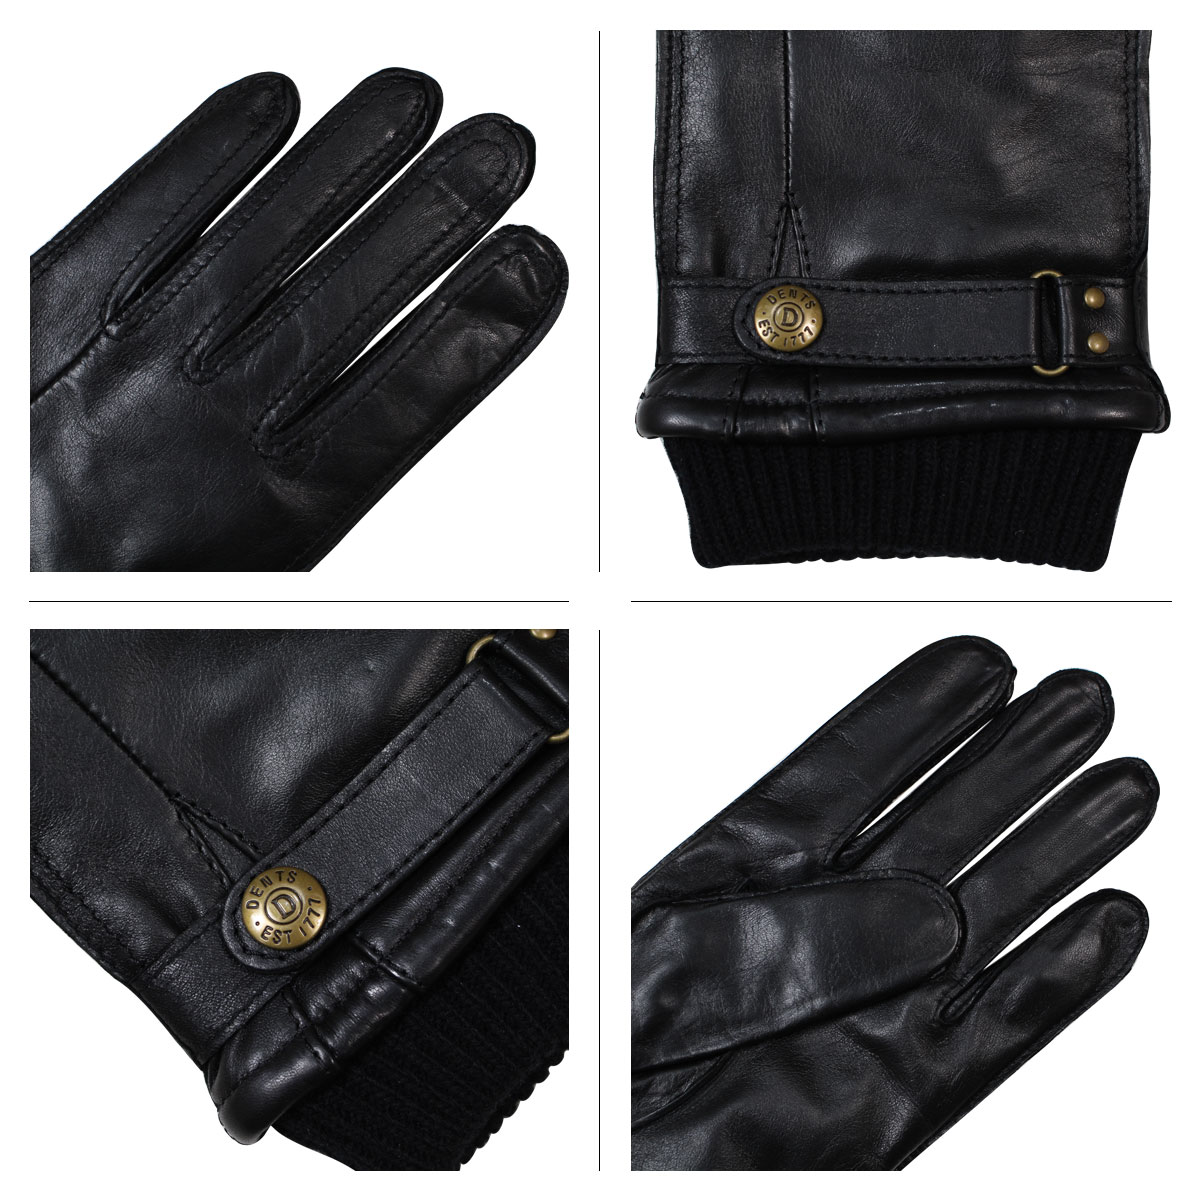 Mens leather gloves dents - Dents Hand Bag Mens Leather Gloves Dents Penrith 5 9018 Handmade 11 29